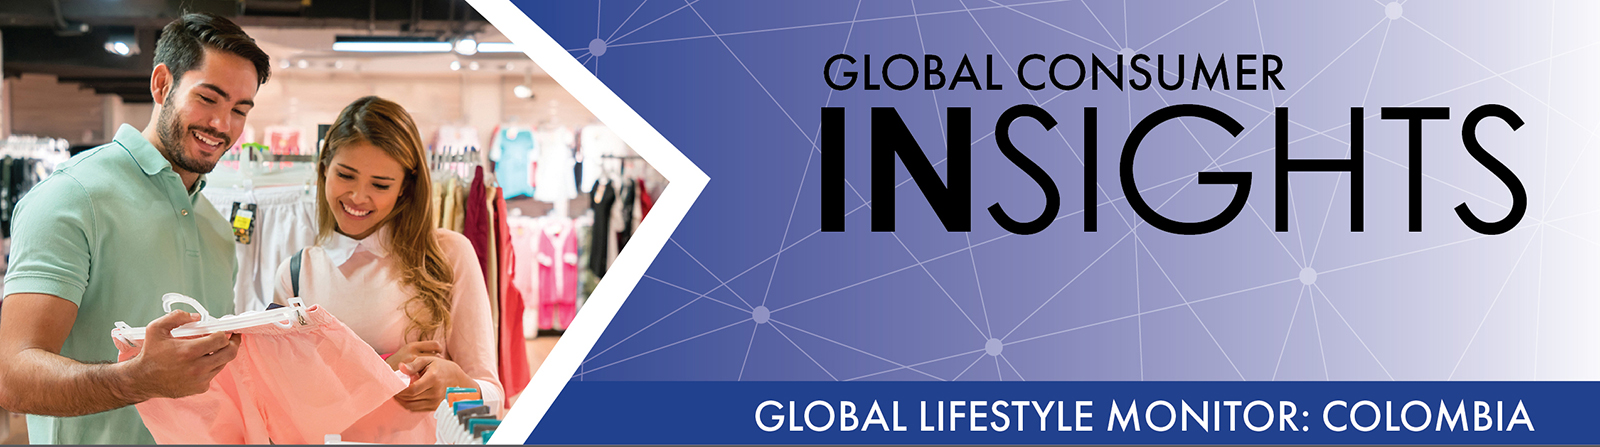 Global Lifestyle Monitor: Colombia